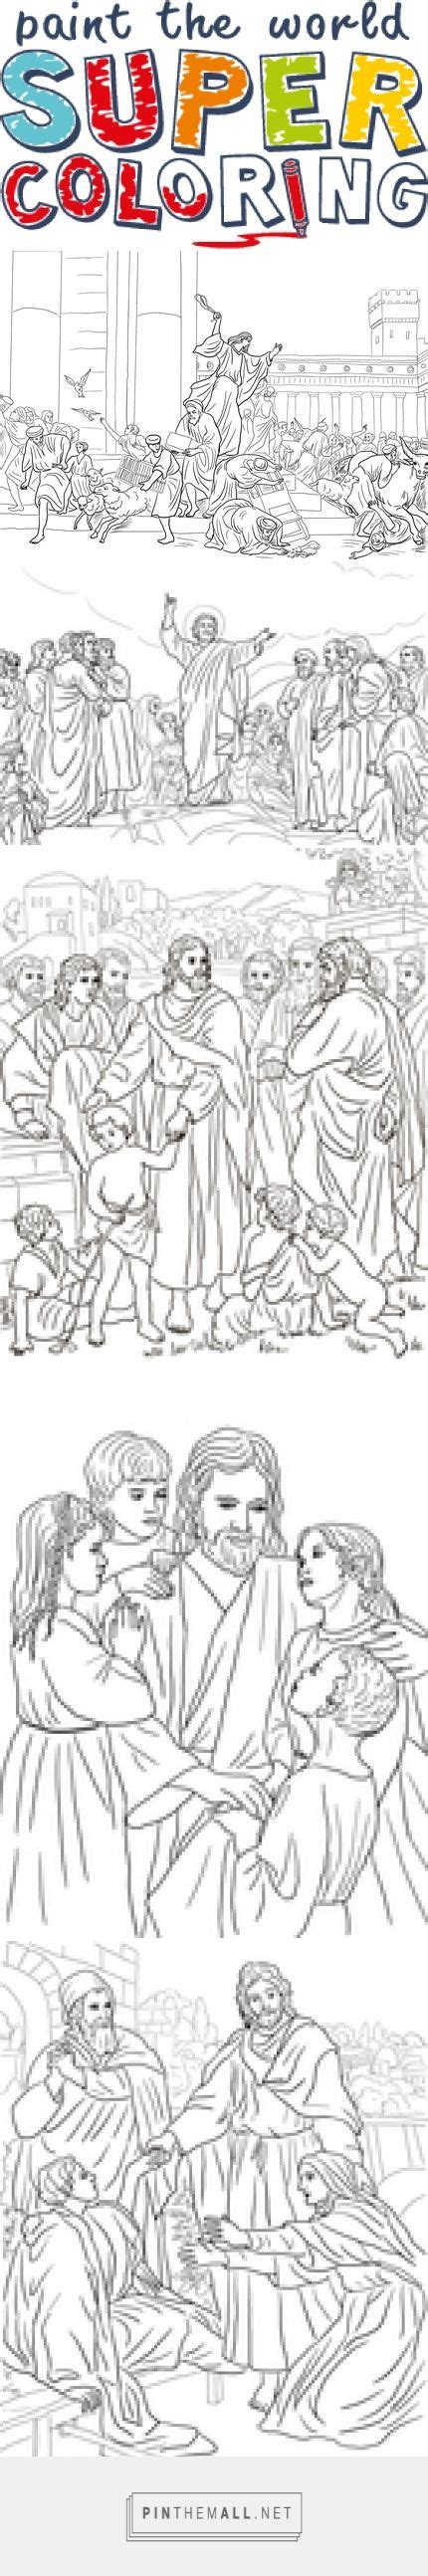 coloring page jesus cleansing temple 716 best images about sabbath school stuff on